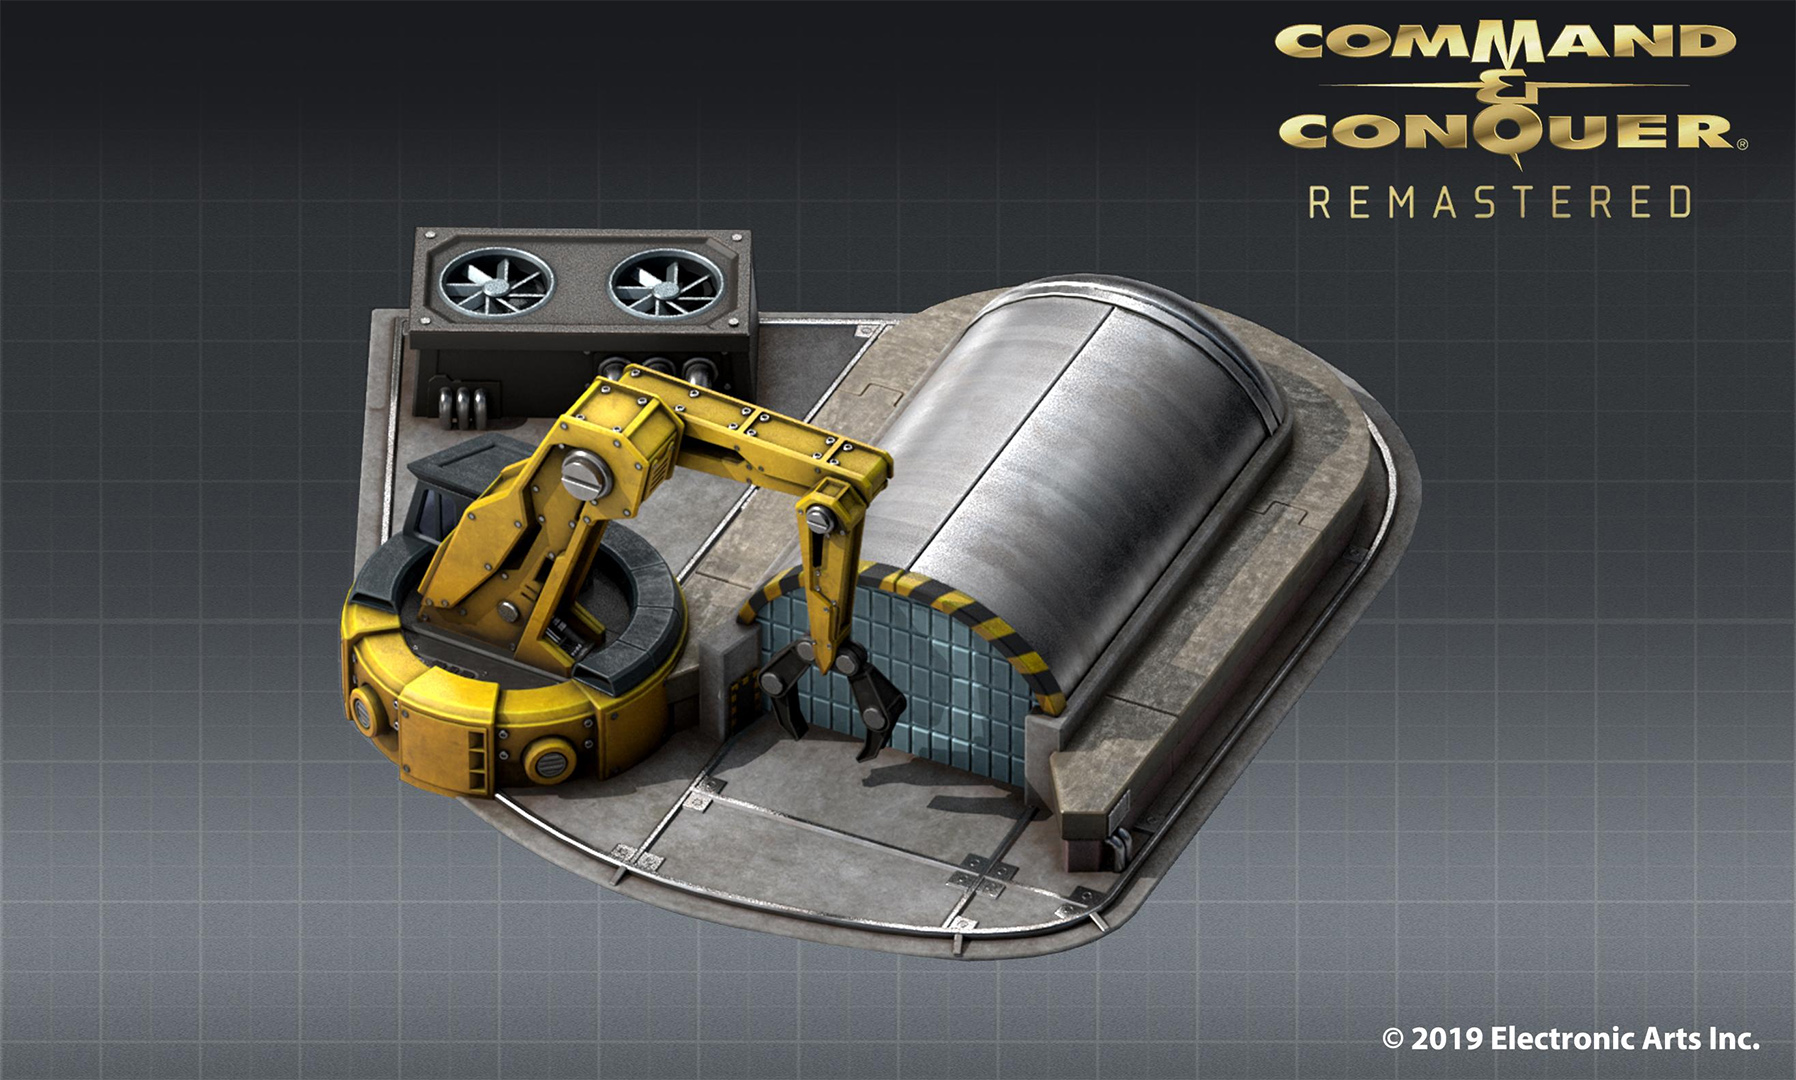 Voici le chantier de construction de Command & Conquer: Remastered